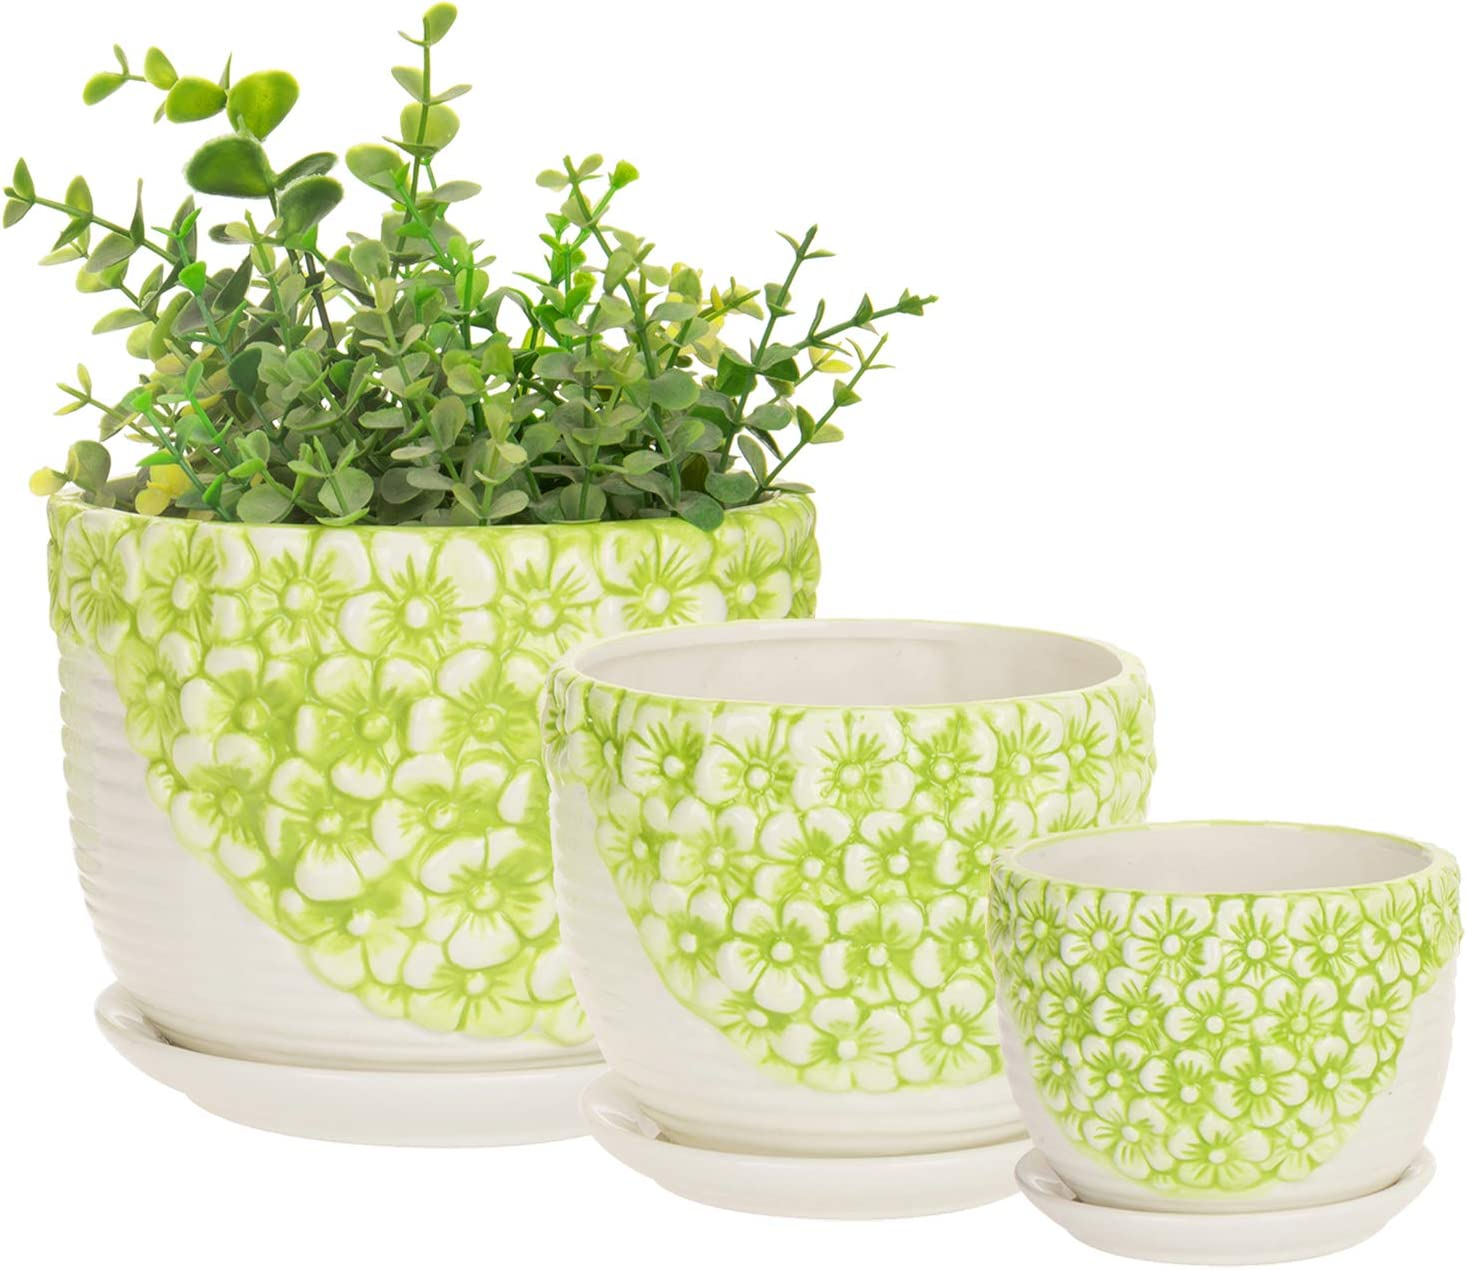 MyGift Set of 3 Green White Flower Design Nesting Ceramic Planter Pots Plant Containers w Attached Saucers